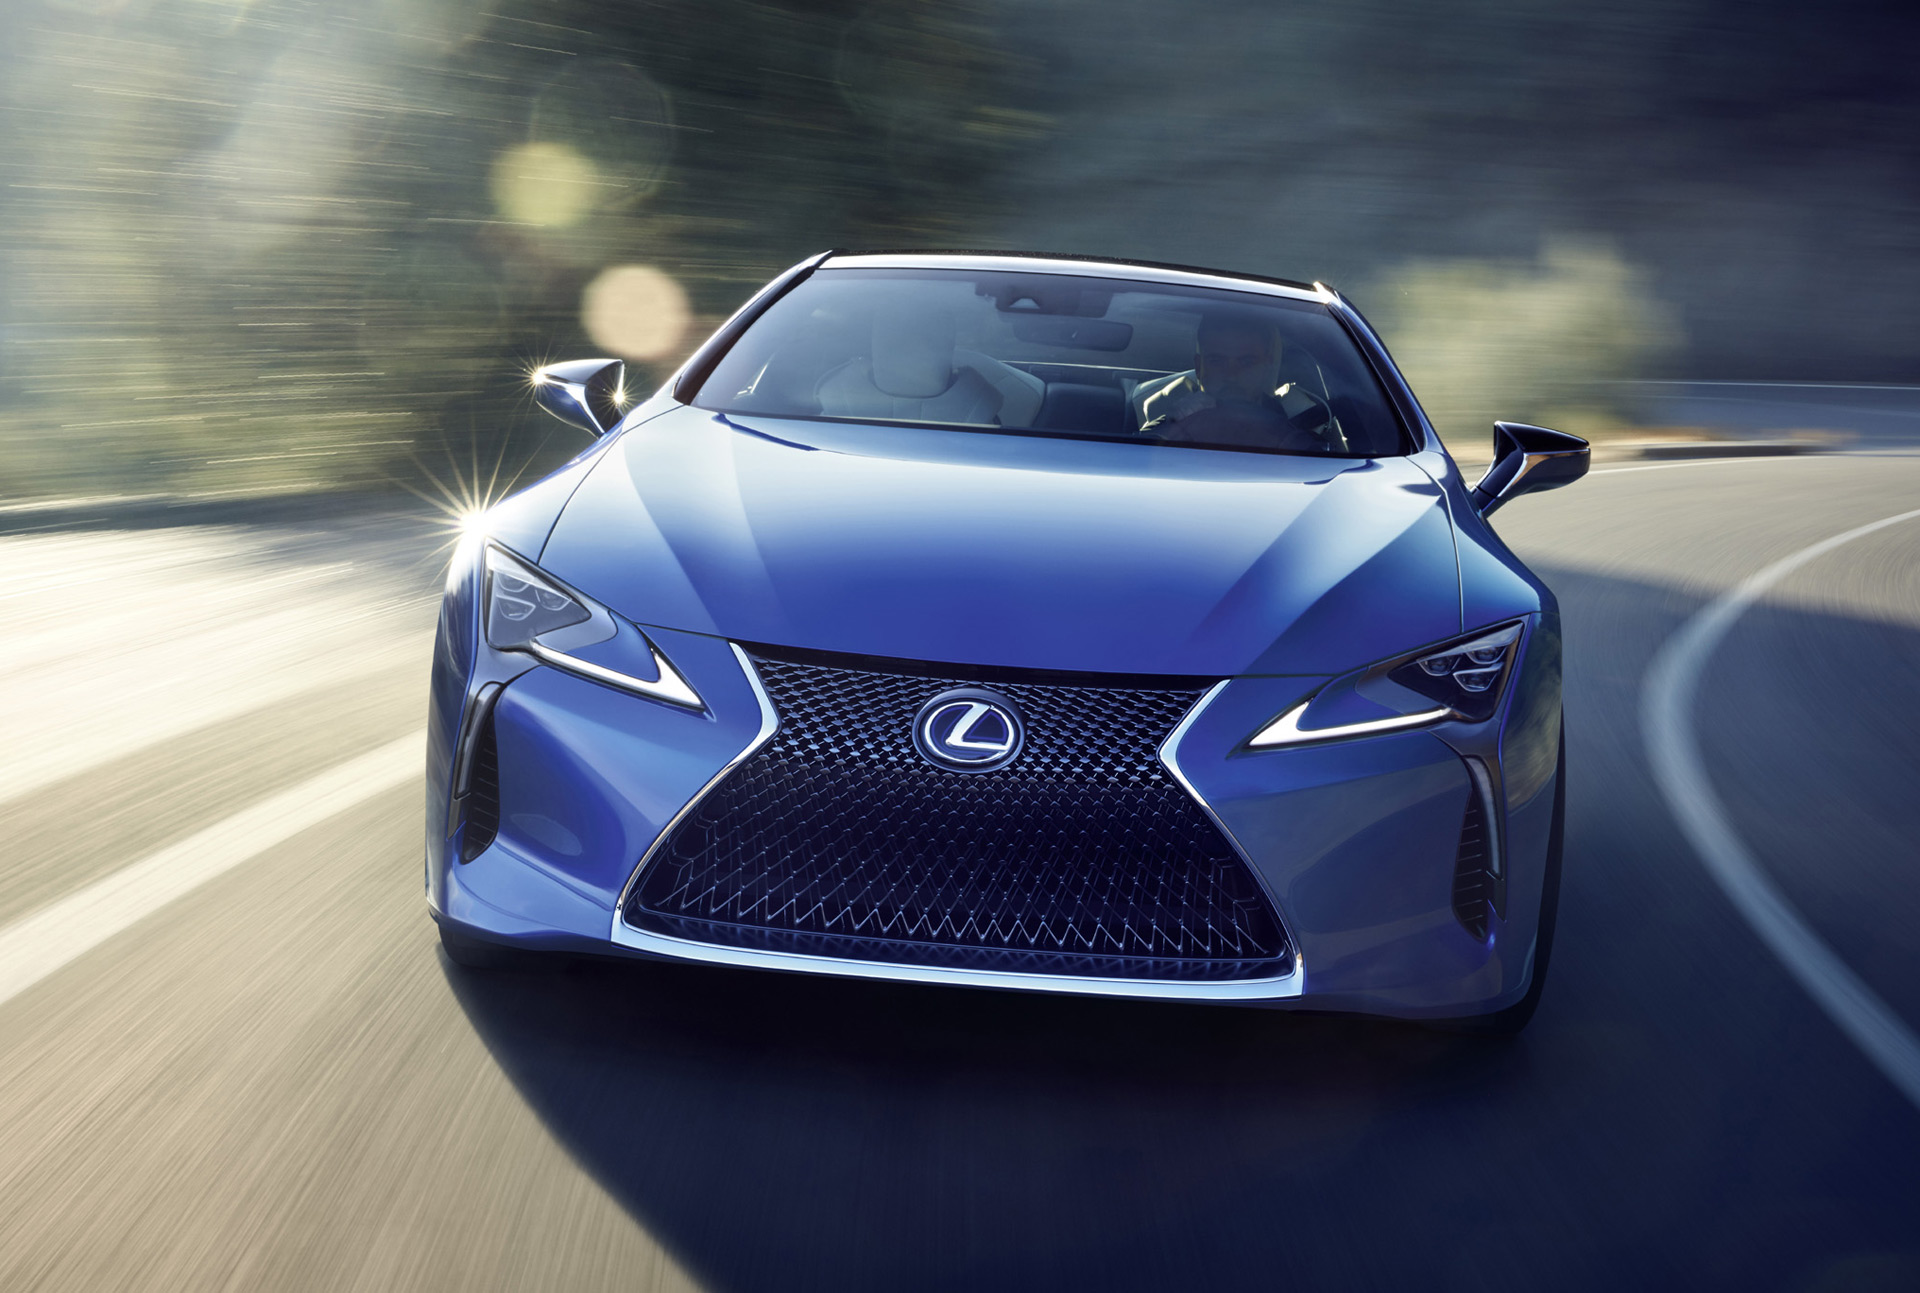 2019 Lexus Lc 500 Preview >> 2016 Kia Optima Wagon, 2017 Volvo V90, 2018 Lexus LC 500h: Car News Headlines